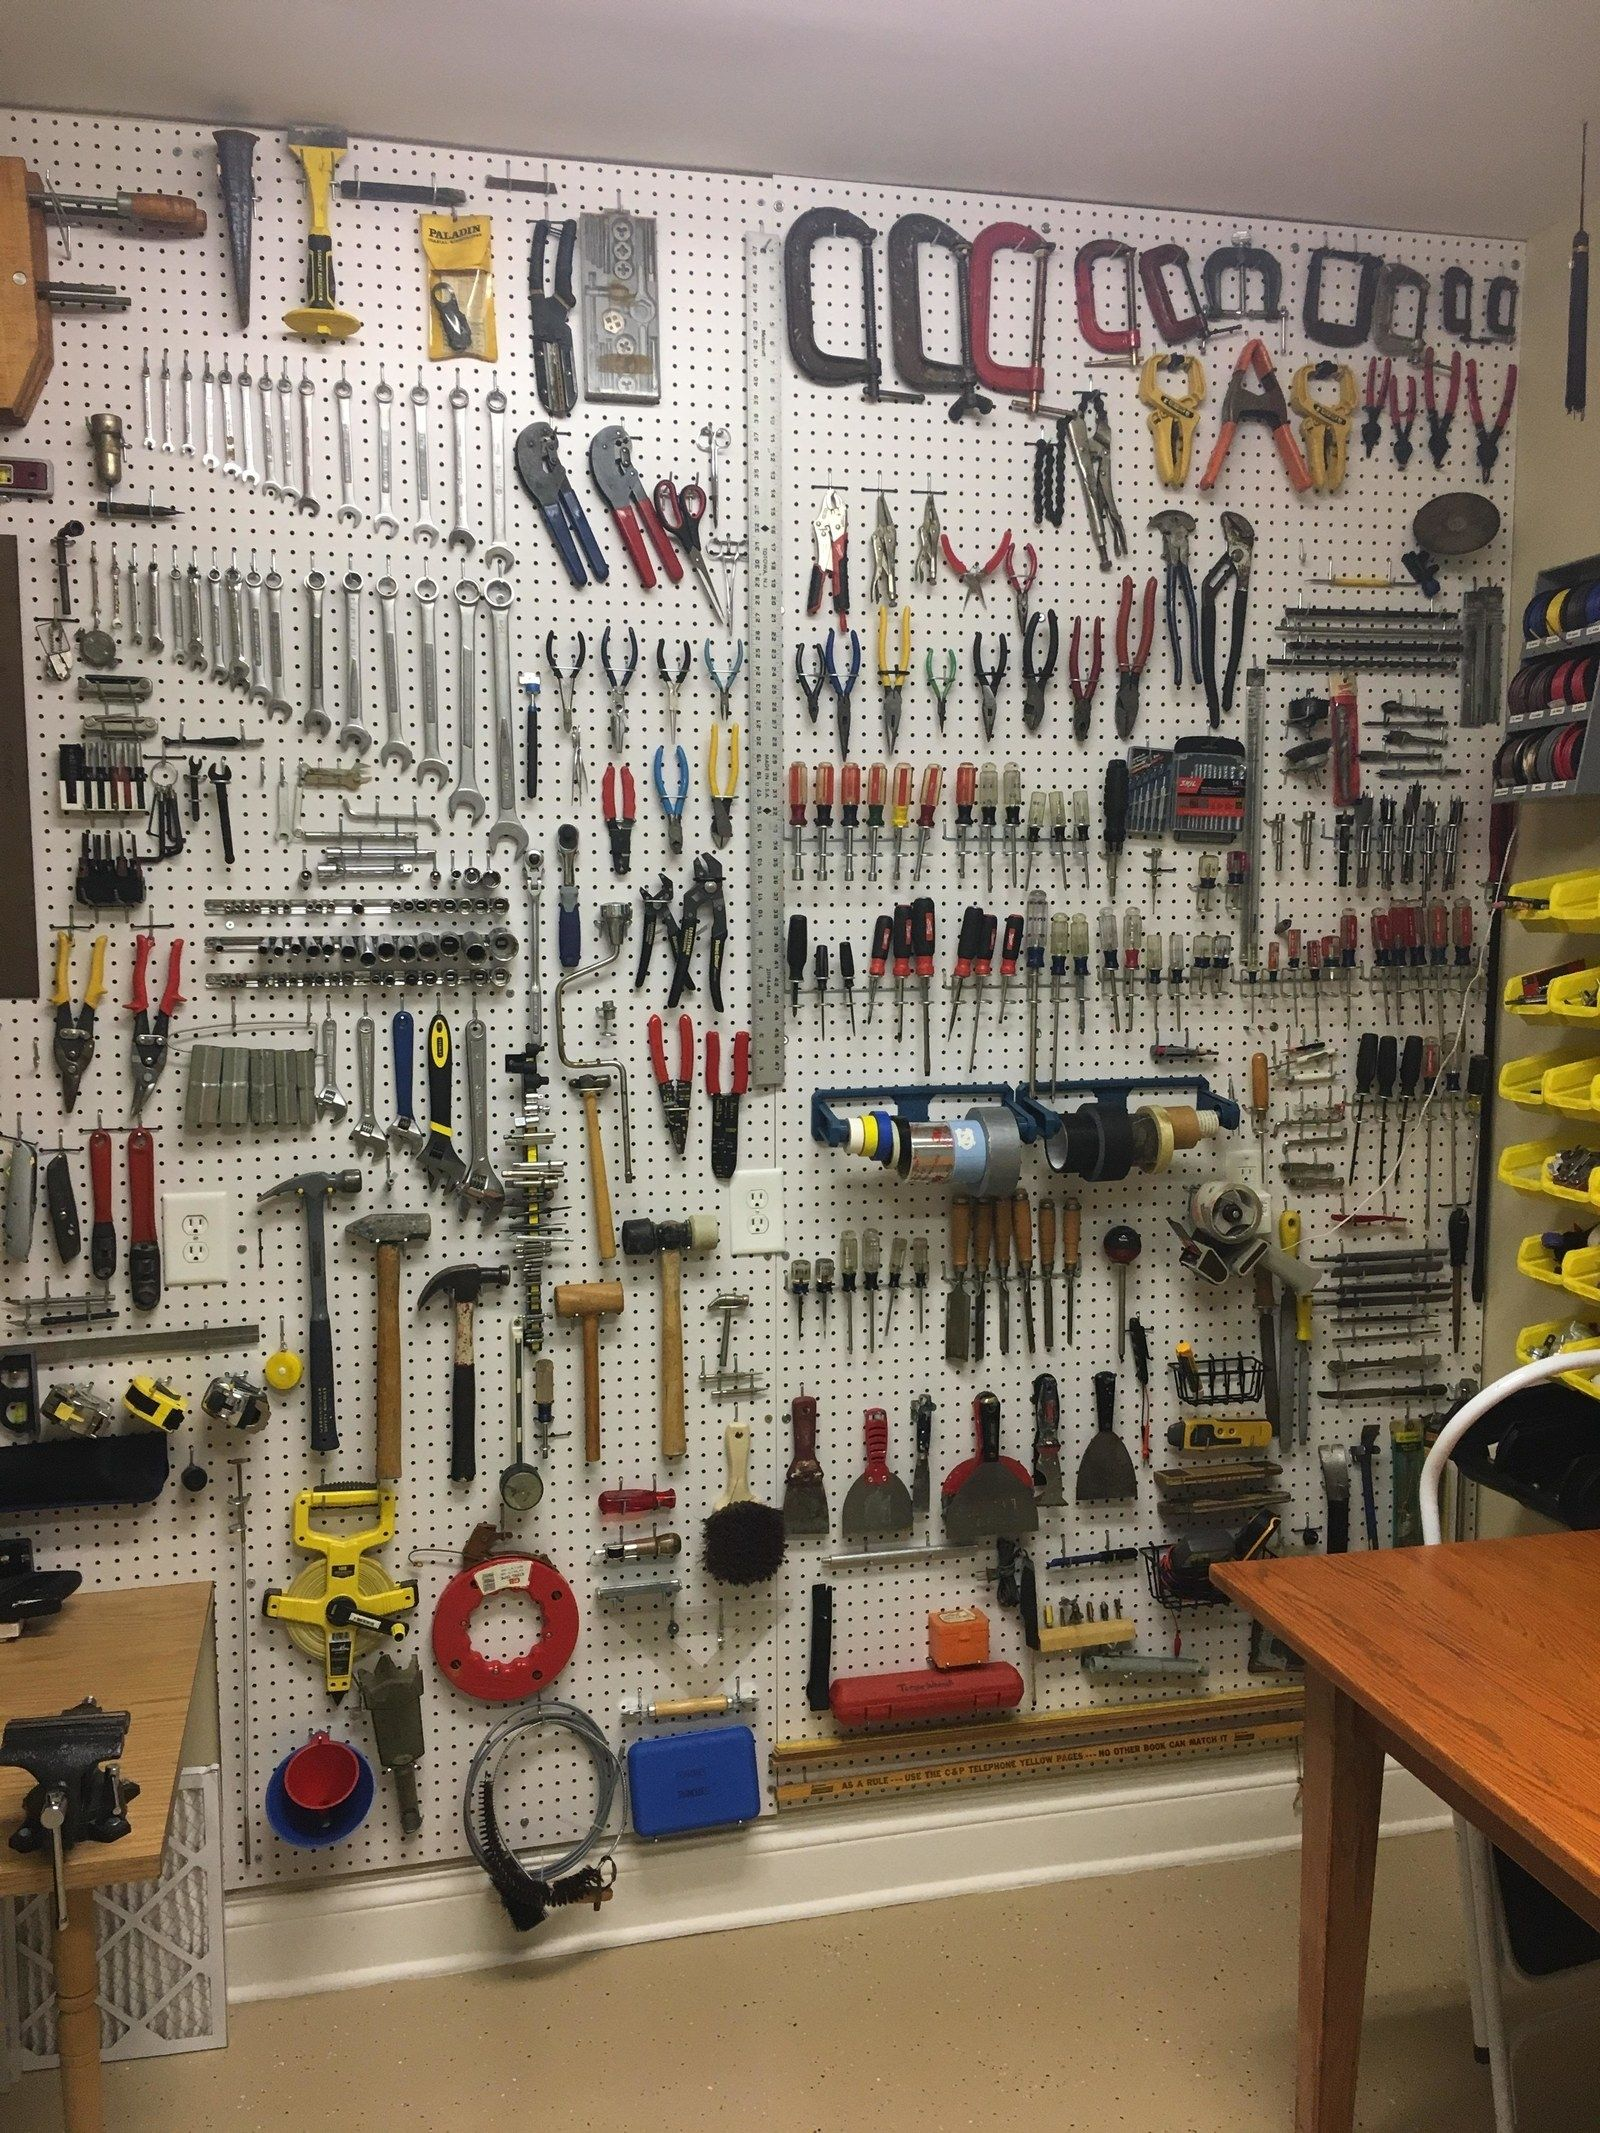 These Oh So Perfectly Arranged Tools Garage Organization Tips Garage Workshop Organization Garage Organisation